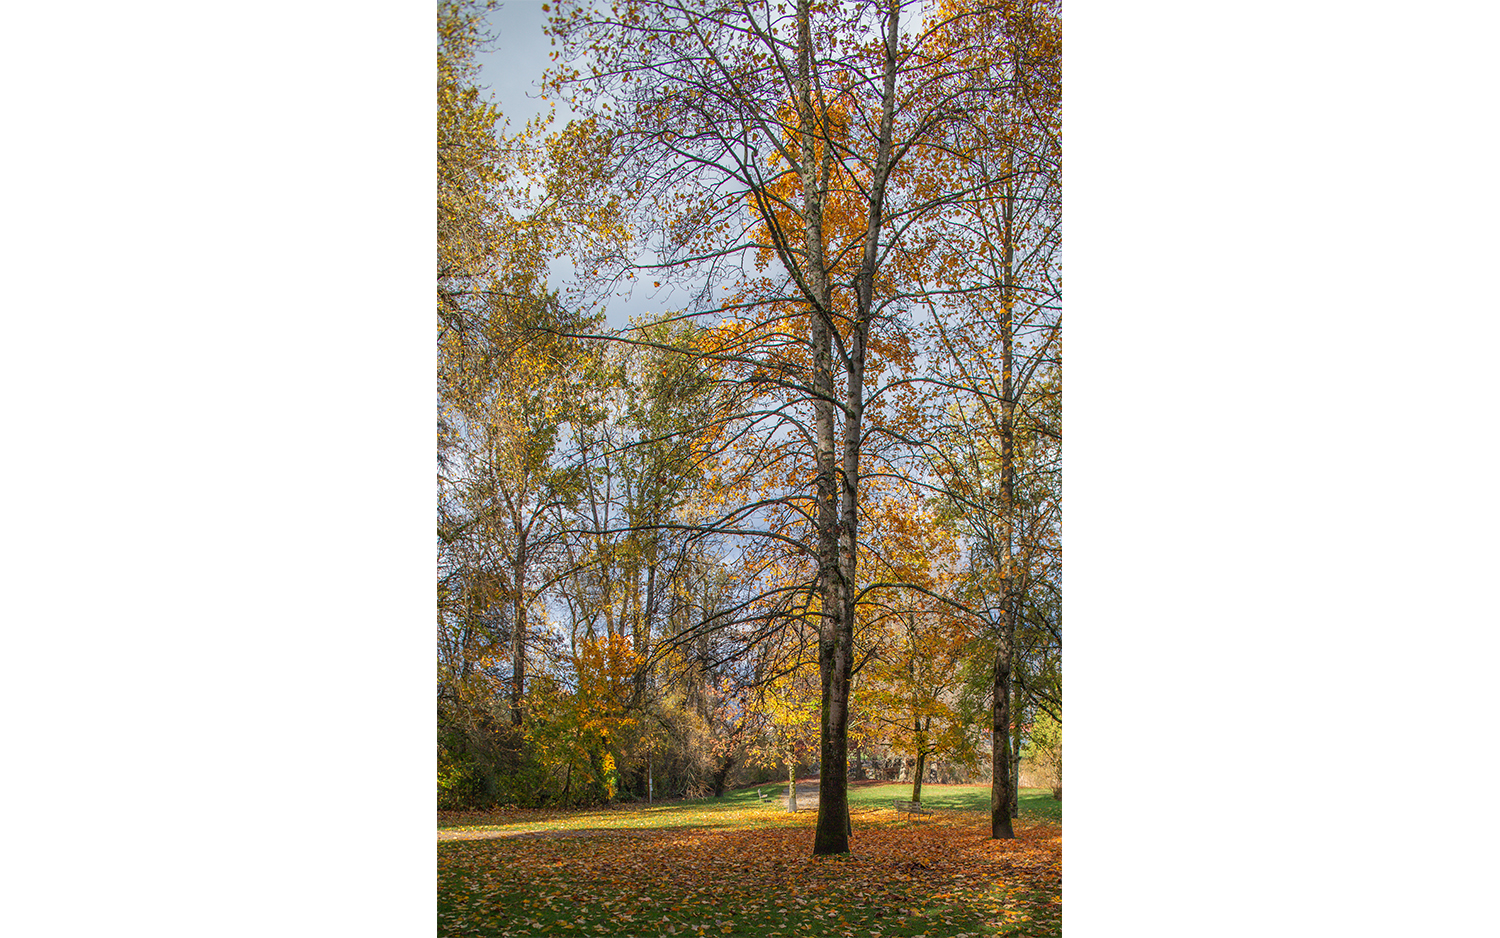 HS-All the trees__09W9178_6402-01.jpg